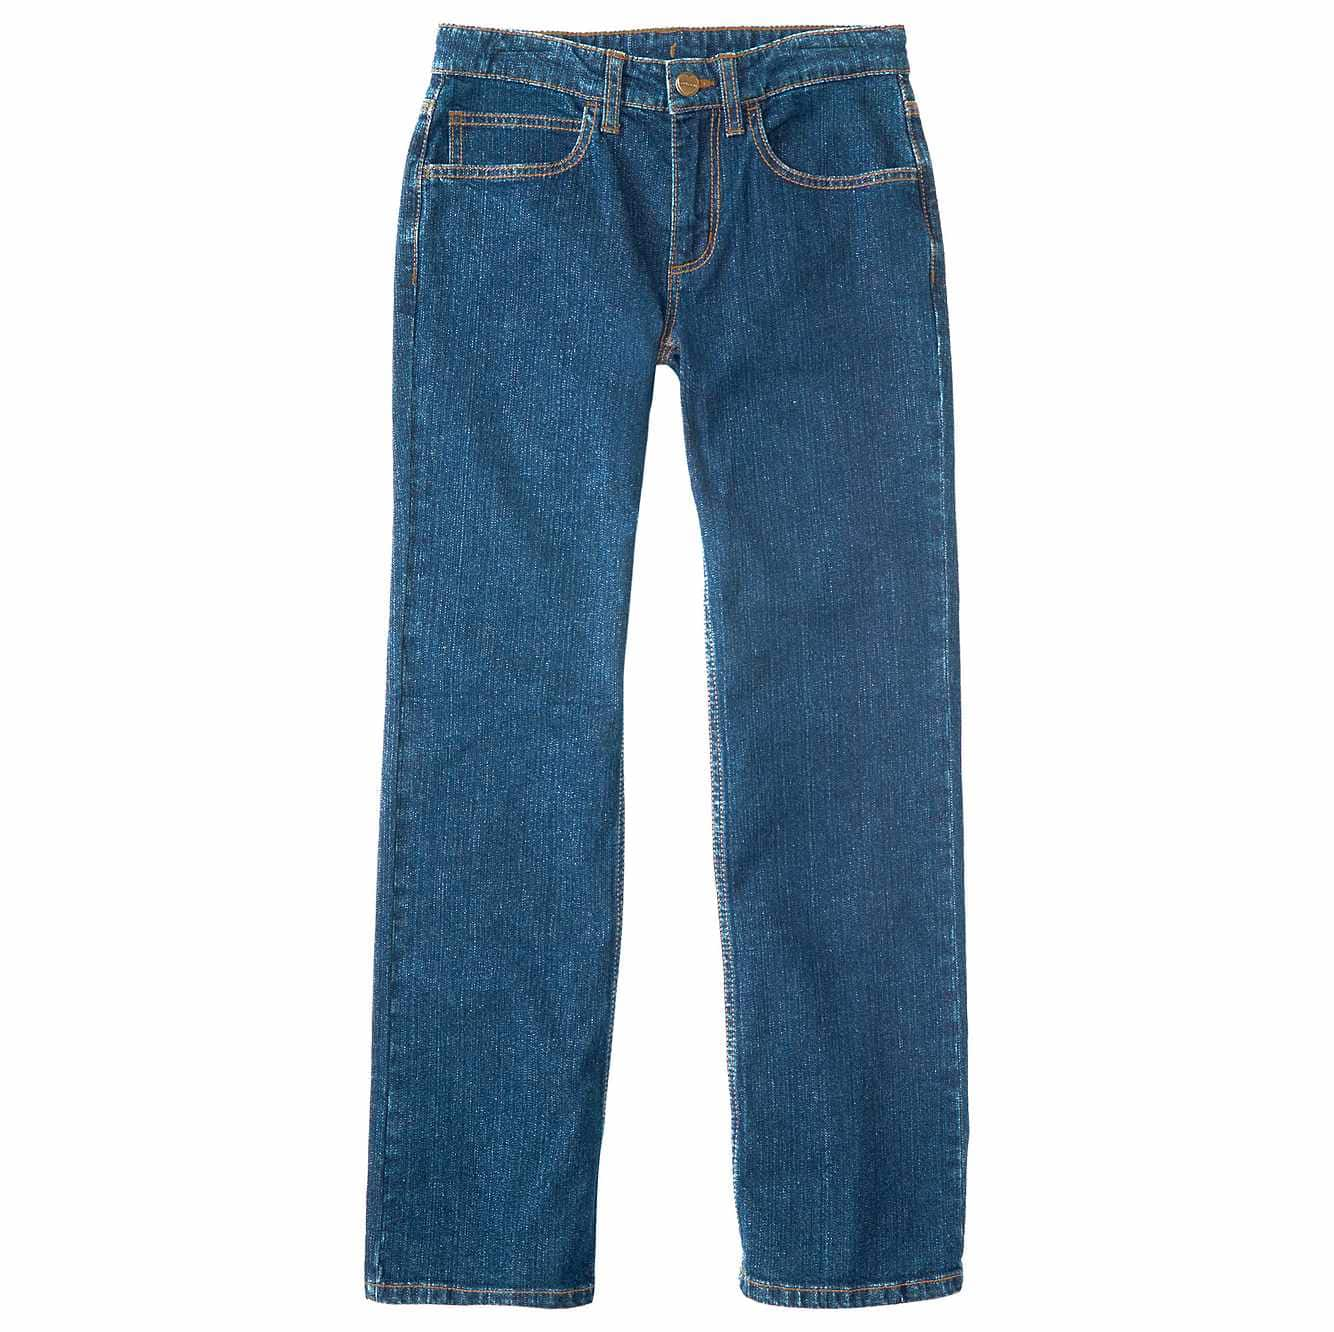 Picture of Denim 5-Pocket Jean in Medium Wash